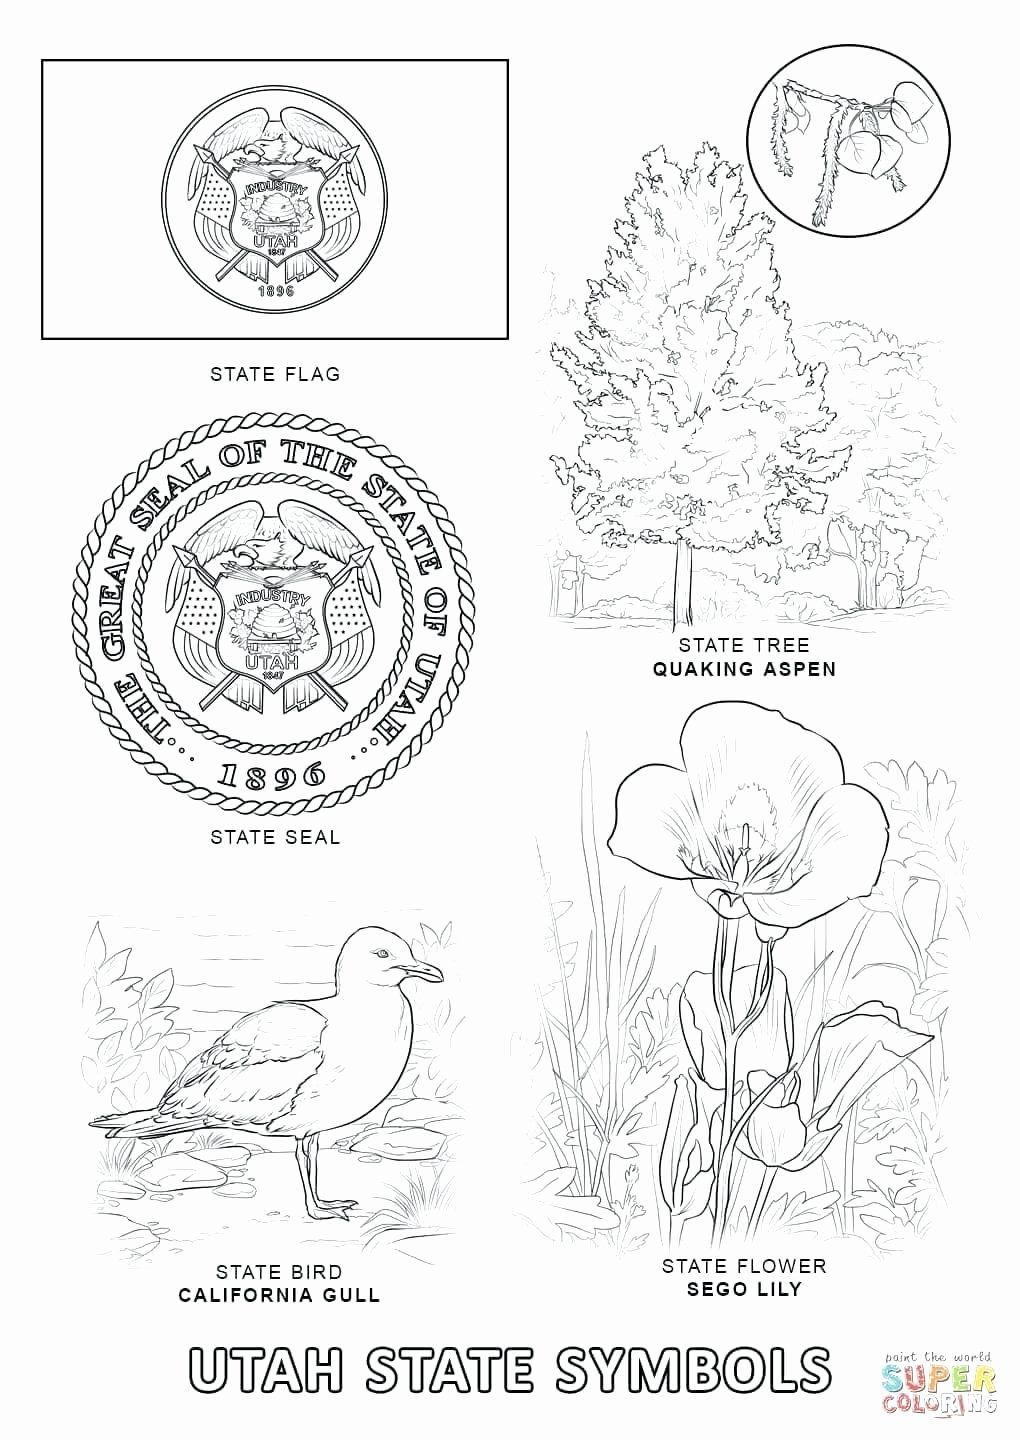 Texas Symbols Coloring Pages Lovely California State